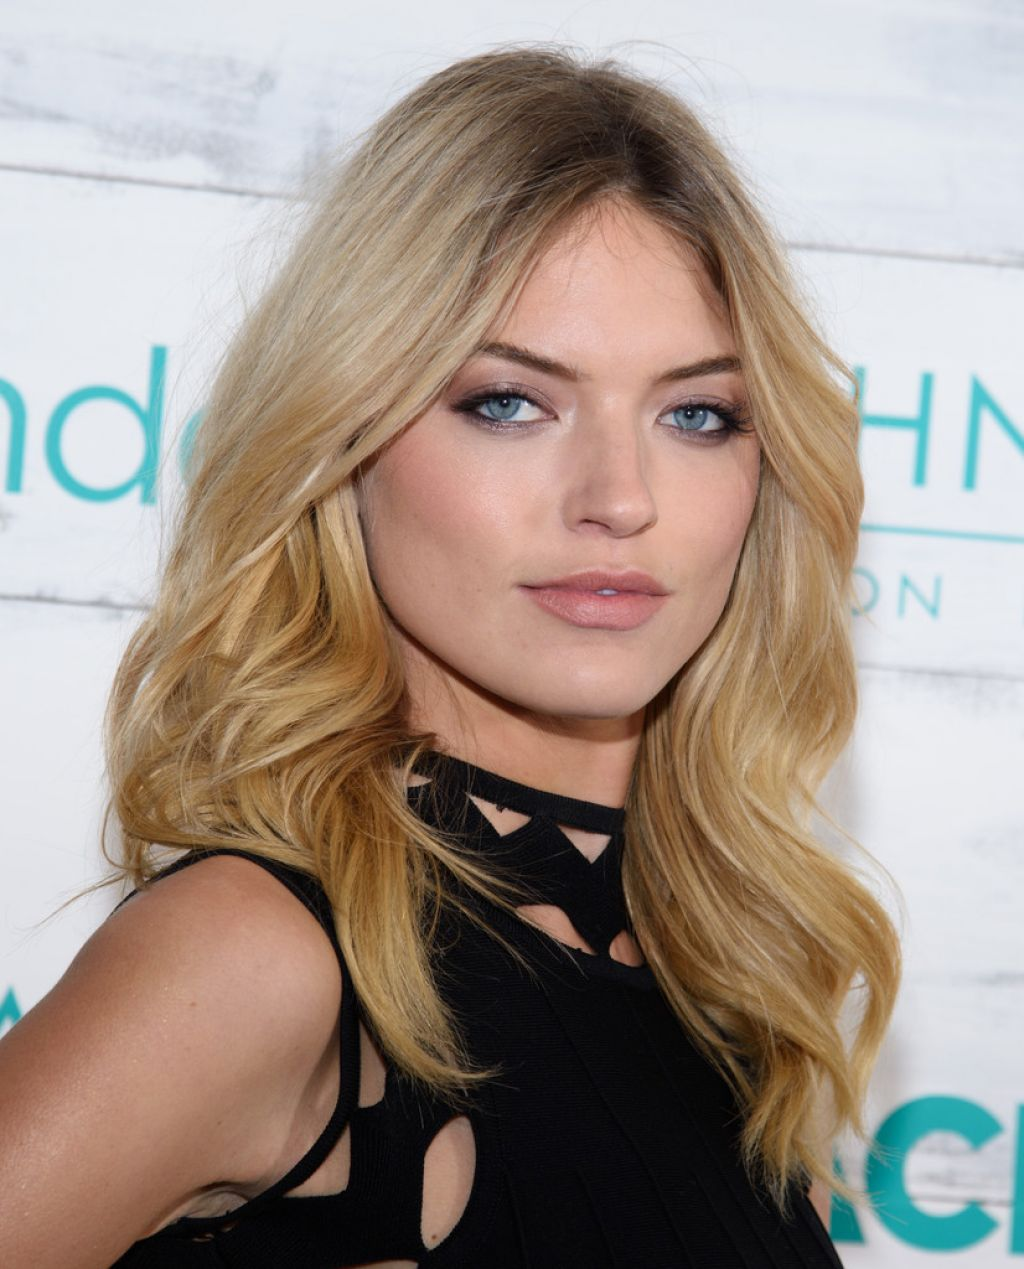 Martha Hunt - John Frieda Hair Care Beach Blonde Collection Party in New York City, Feb. 2015